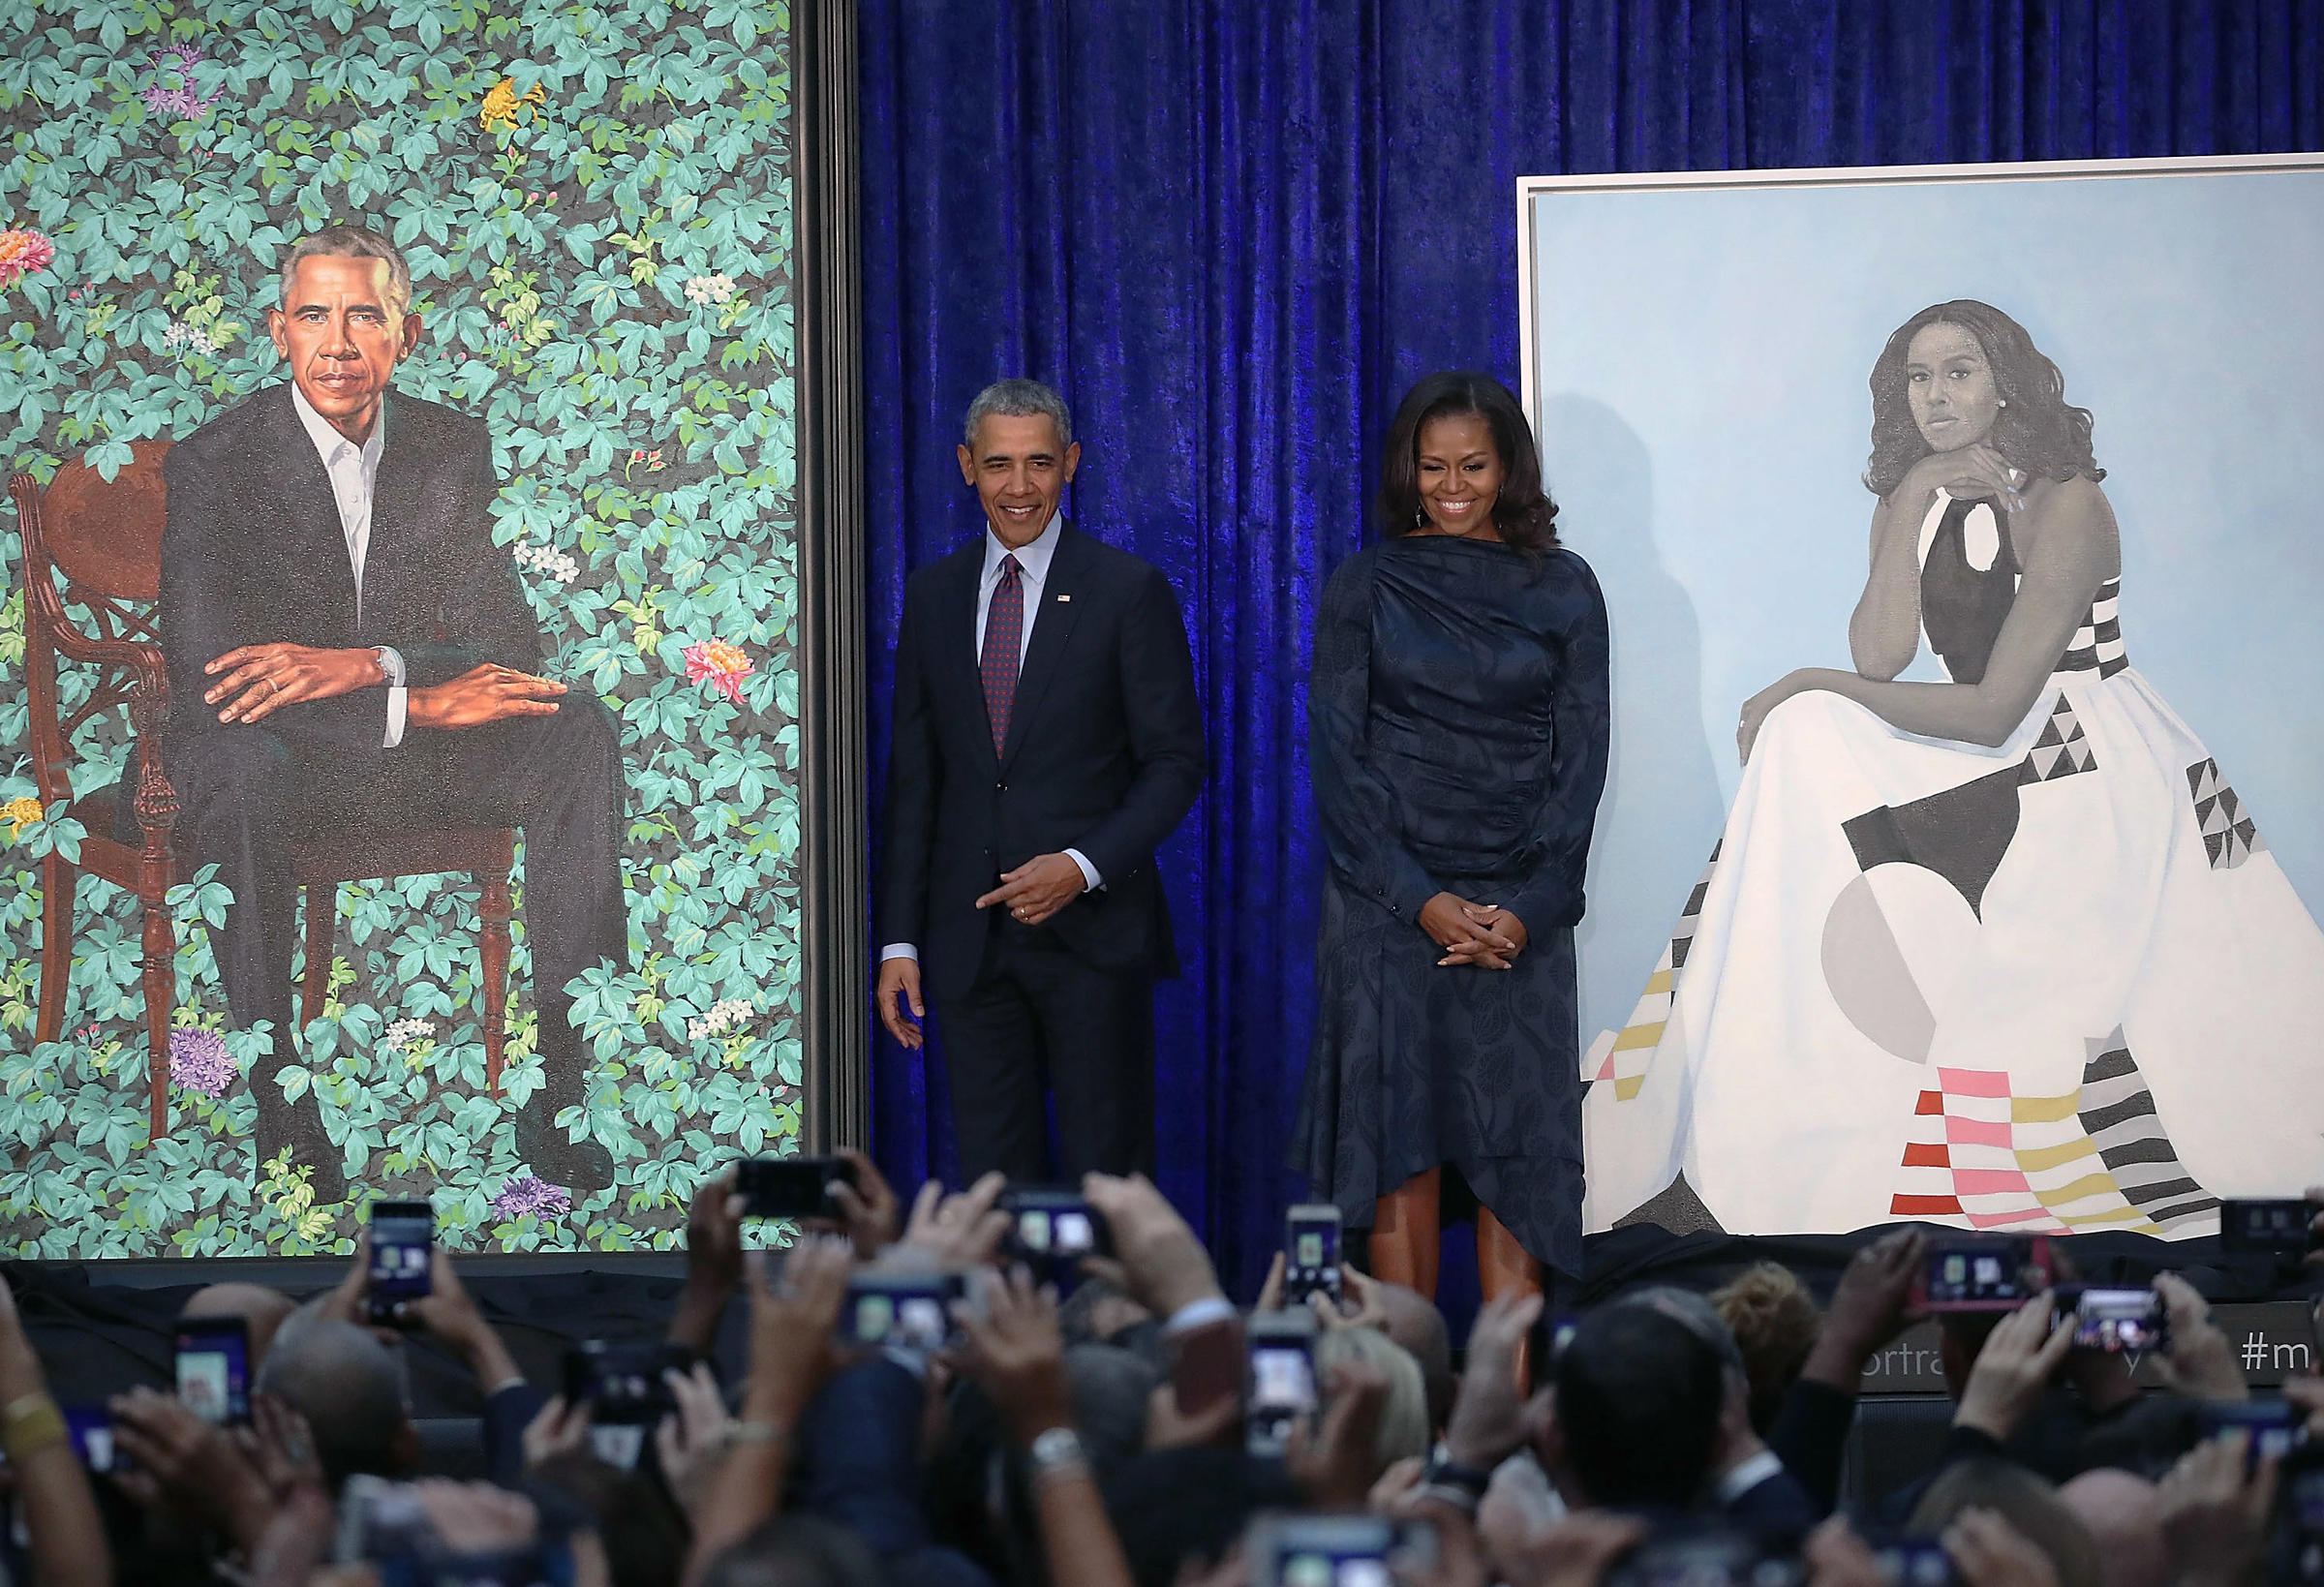 Paintings Of Barack And Michelle Obama Unveiled At Portrait